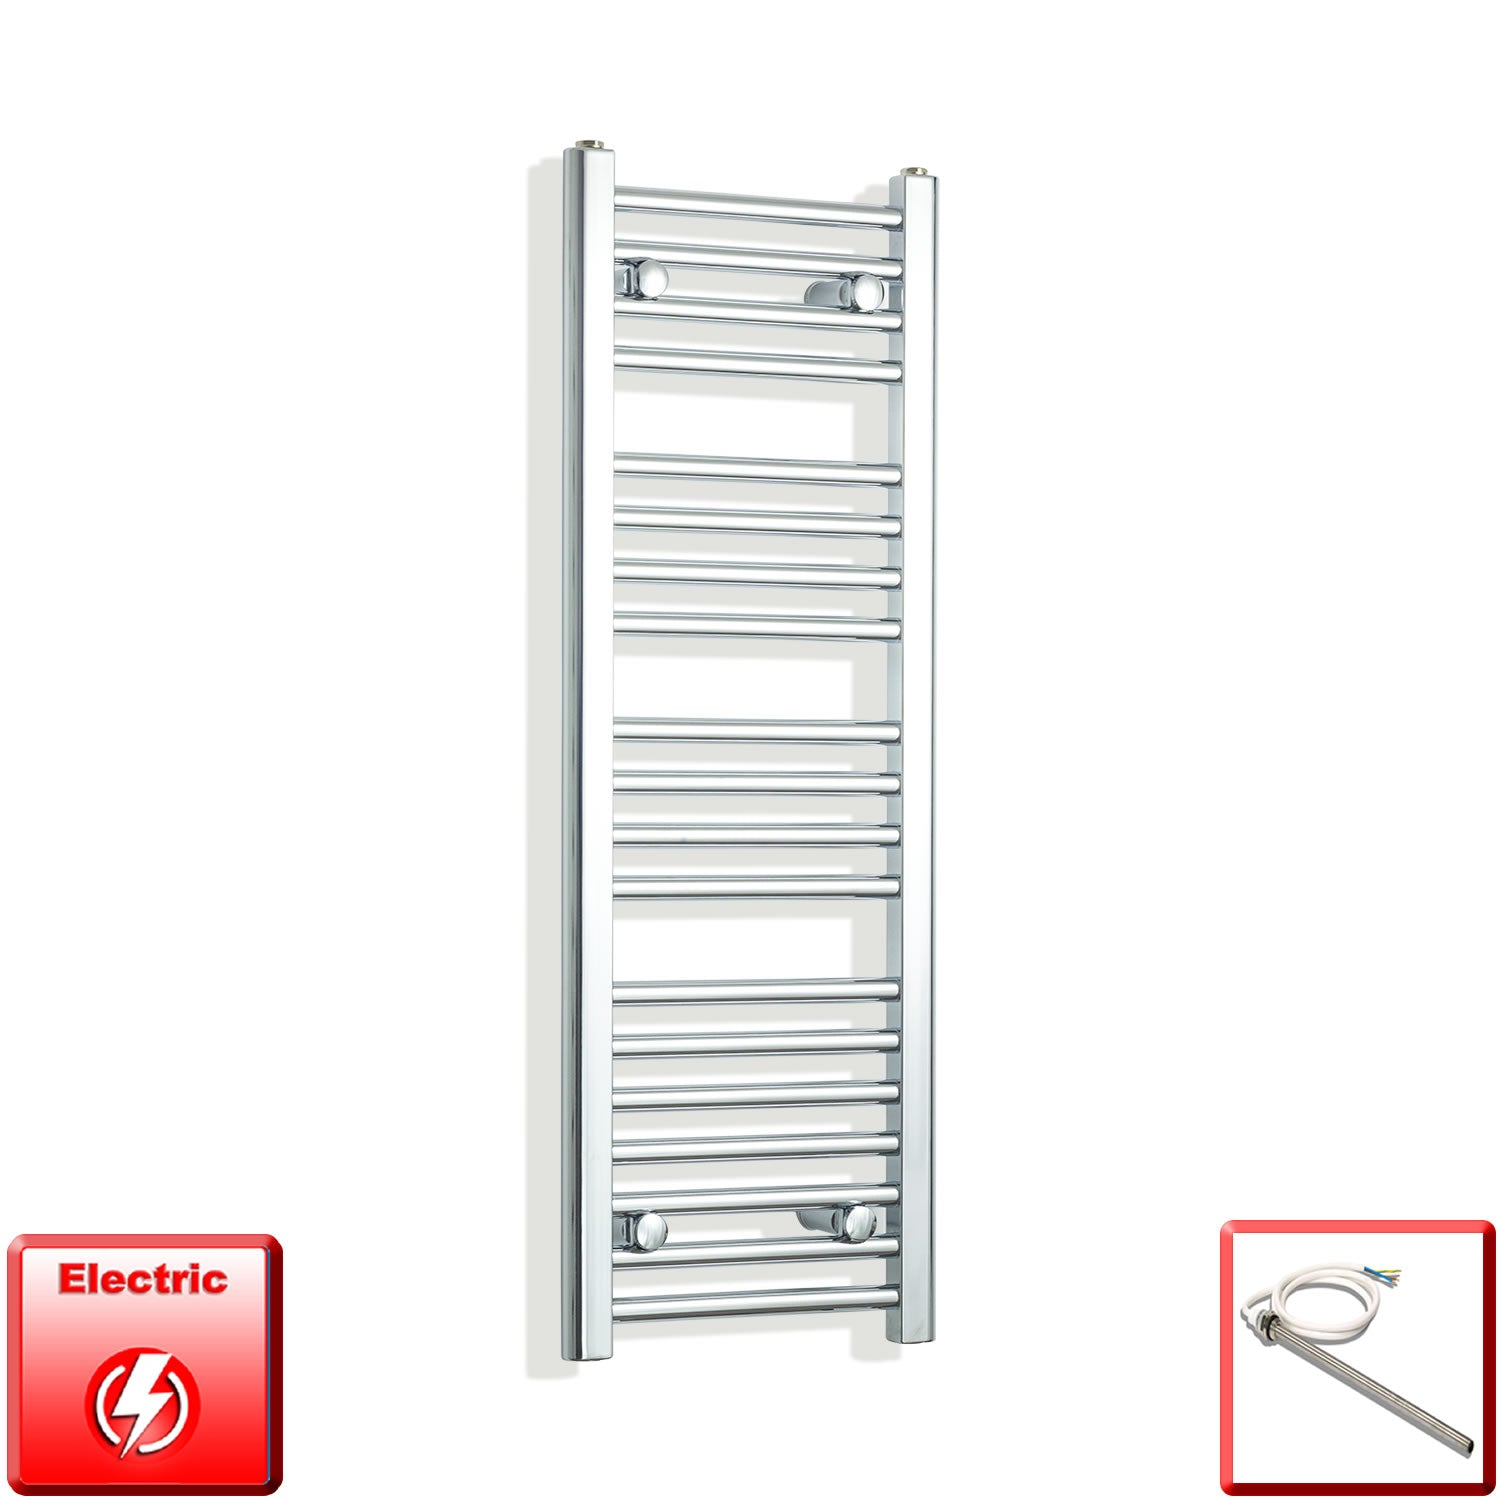 350mm Wide 1000mm High Pre-Filled Chrome Electric Towel Rail Radiator With Single Heat Element